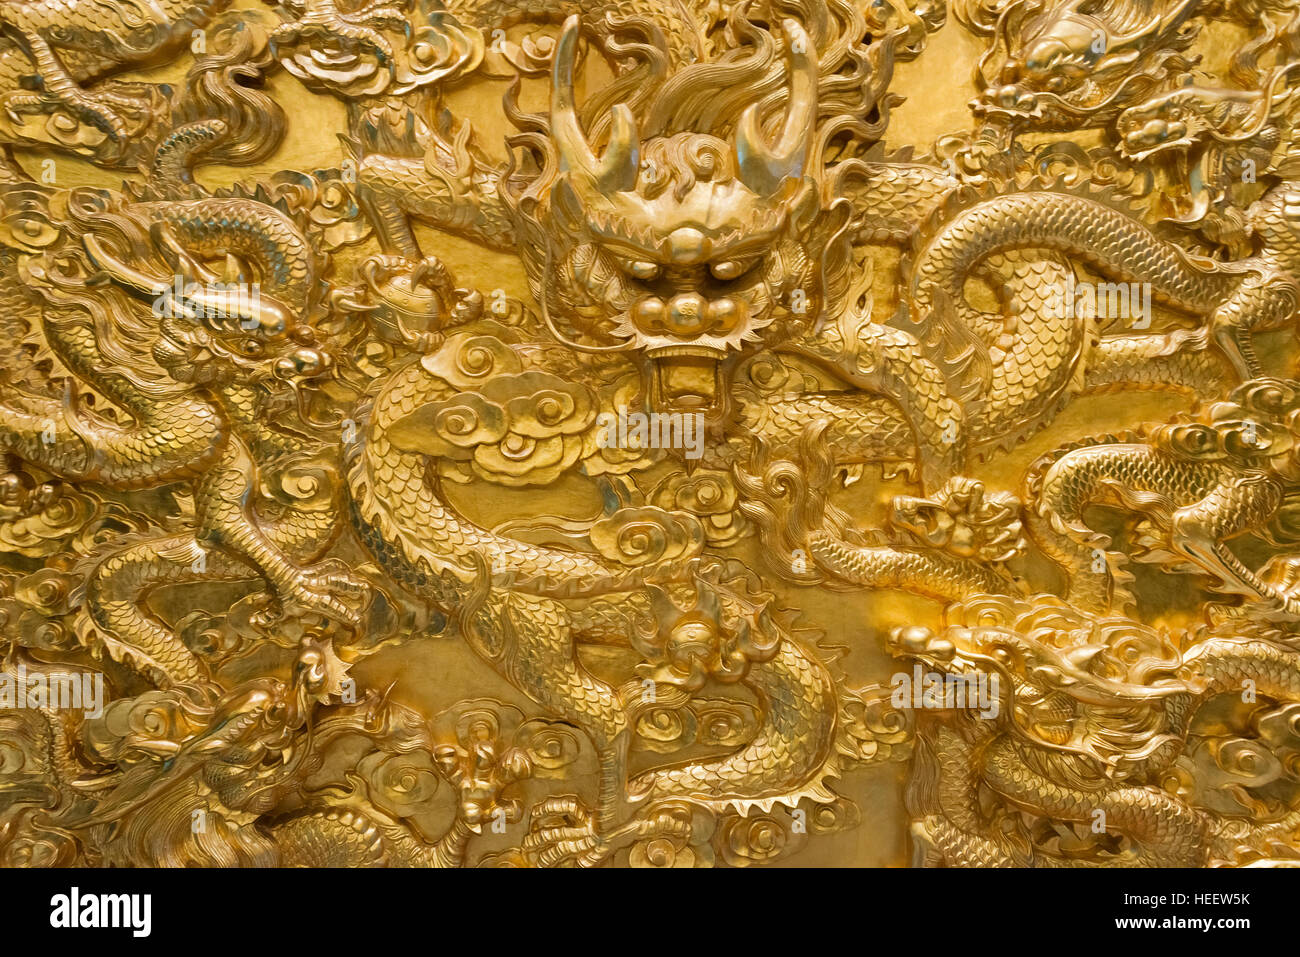 Chinese Dragon Painting Stock Photos & Chinese Dragon Painting Stock ...